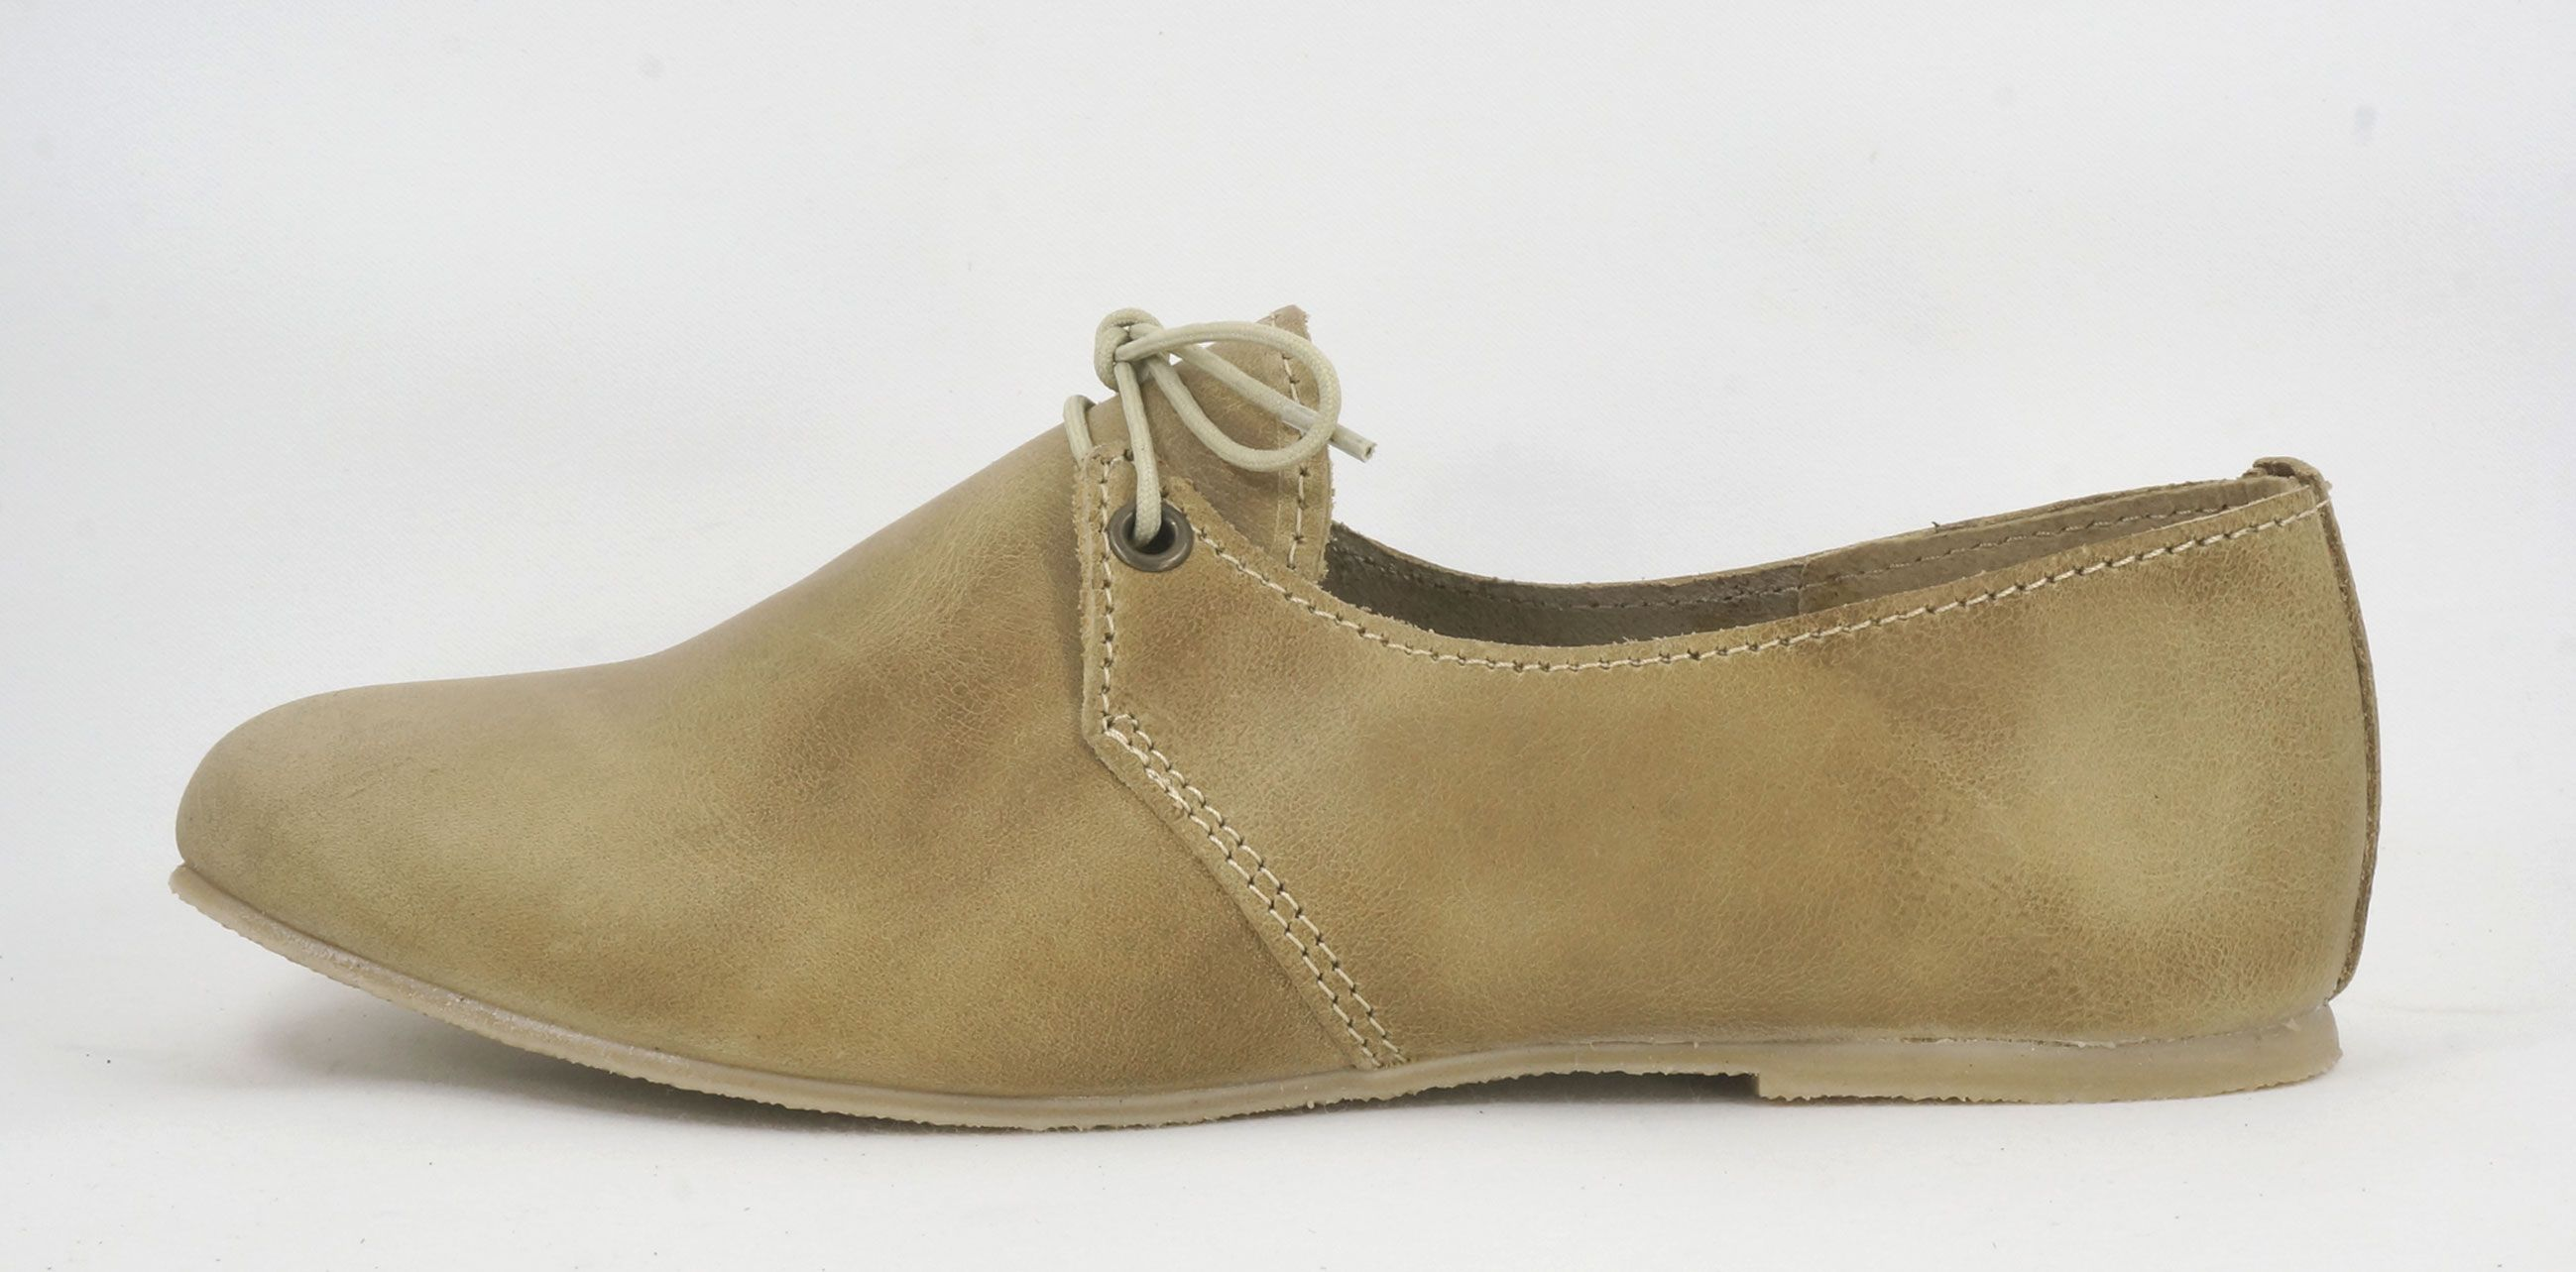 Pin On Ladies Shoes Handcrafted Genuine Leather